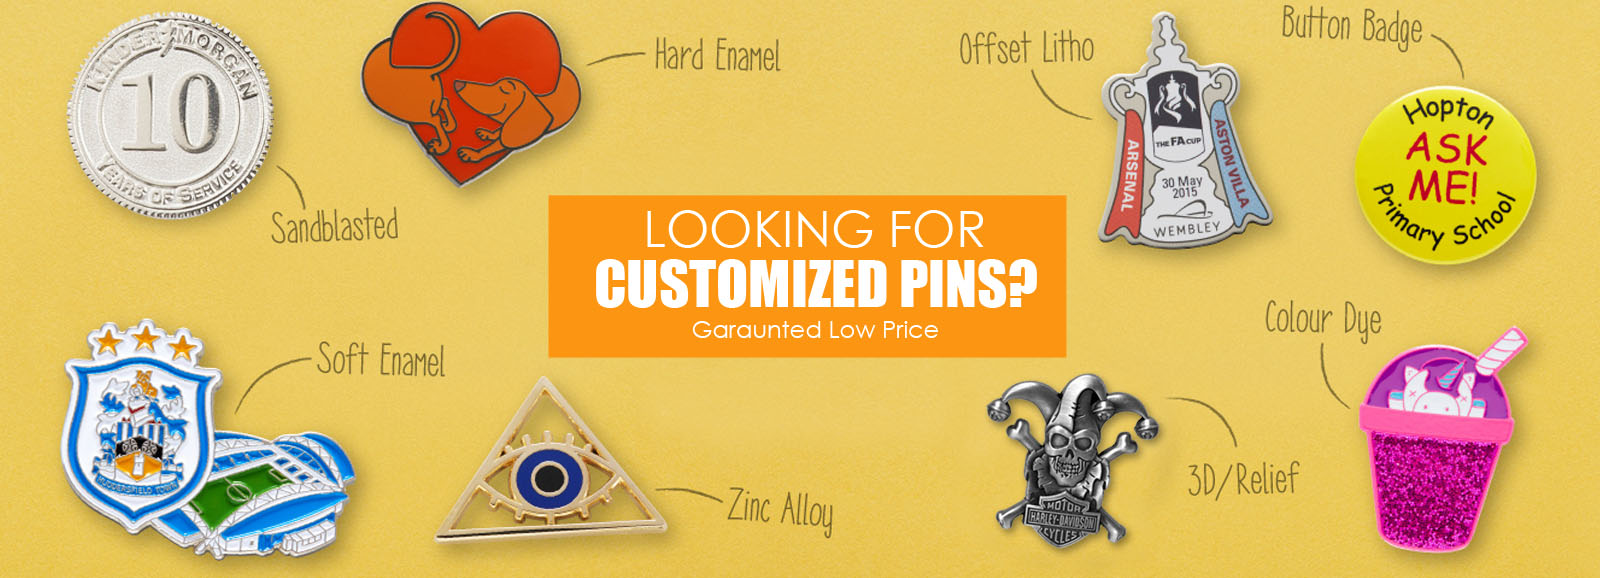 CUSTOM LAPEL PINS - PrintX   Products And Printing Services